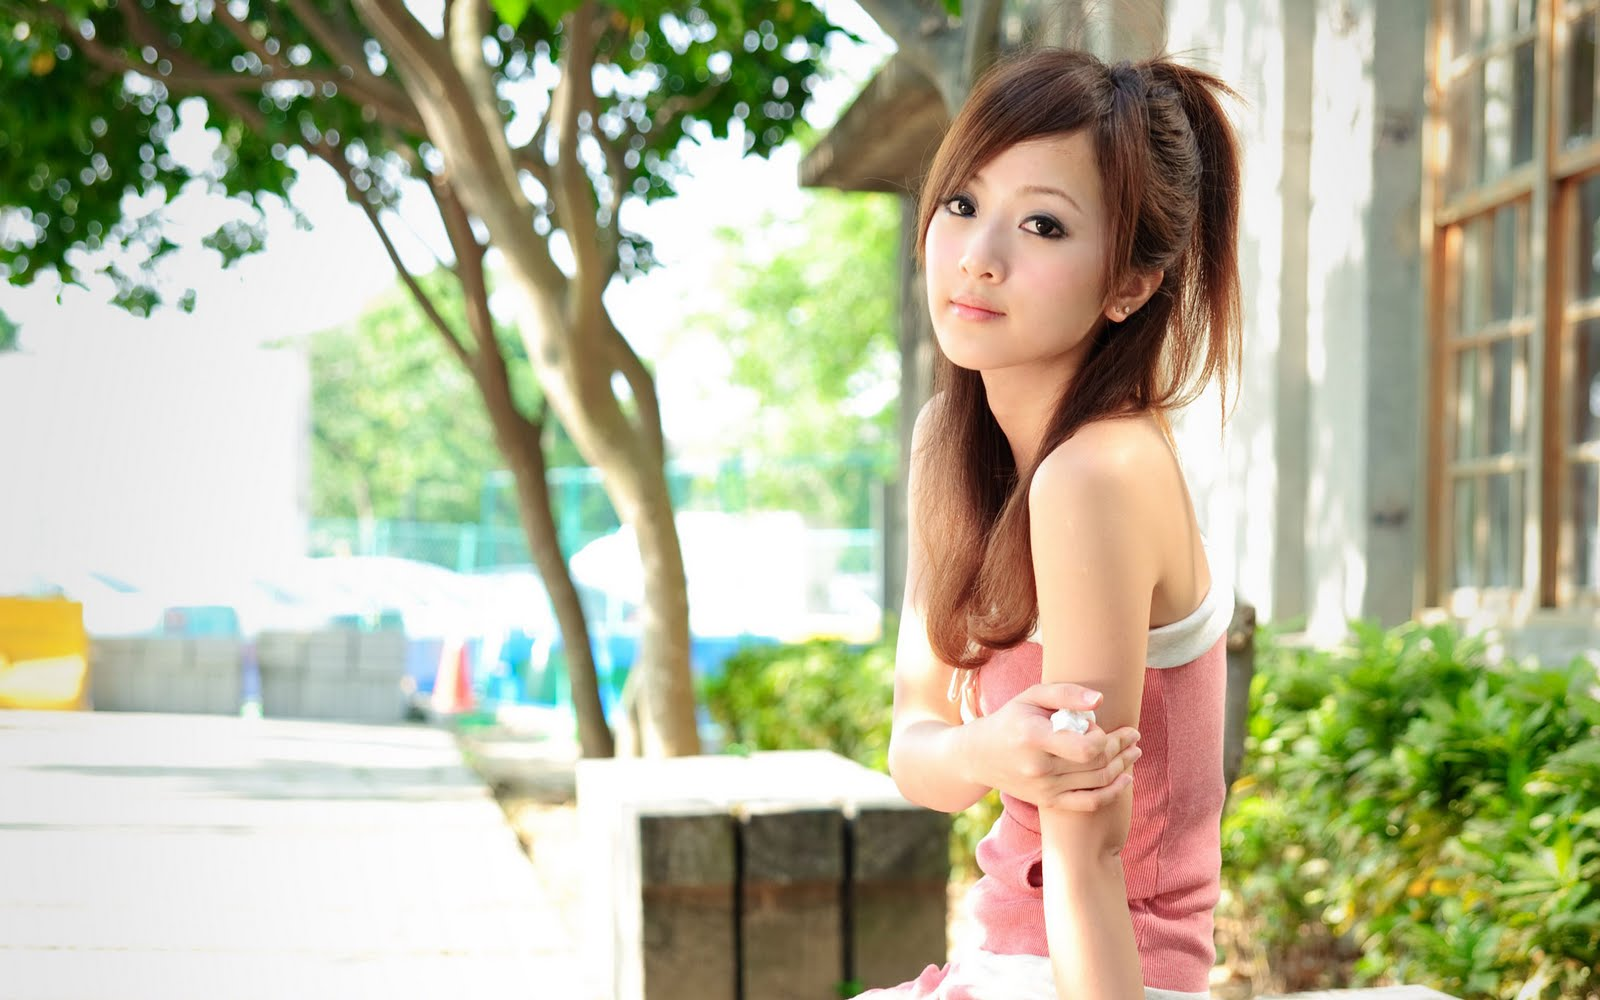 Cute Asian Girls HD Wallpapers Desktop Wallpapers 1600x1000